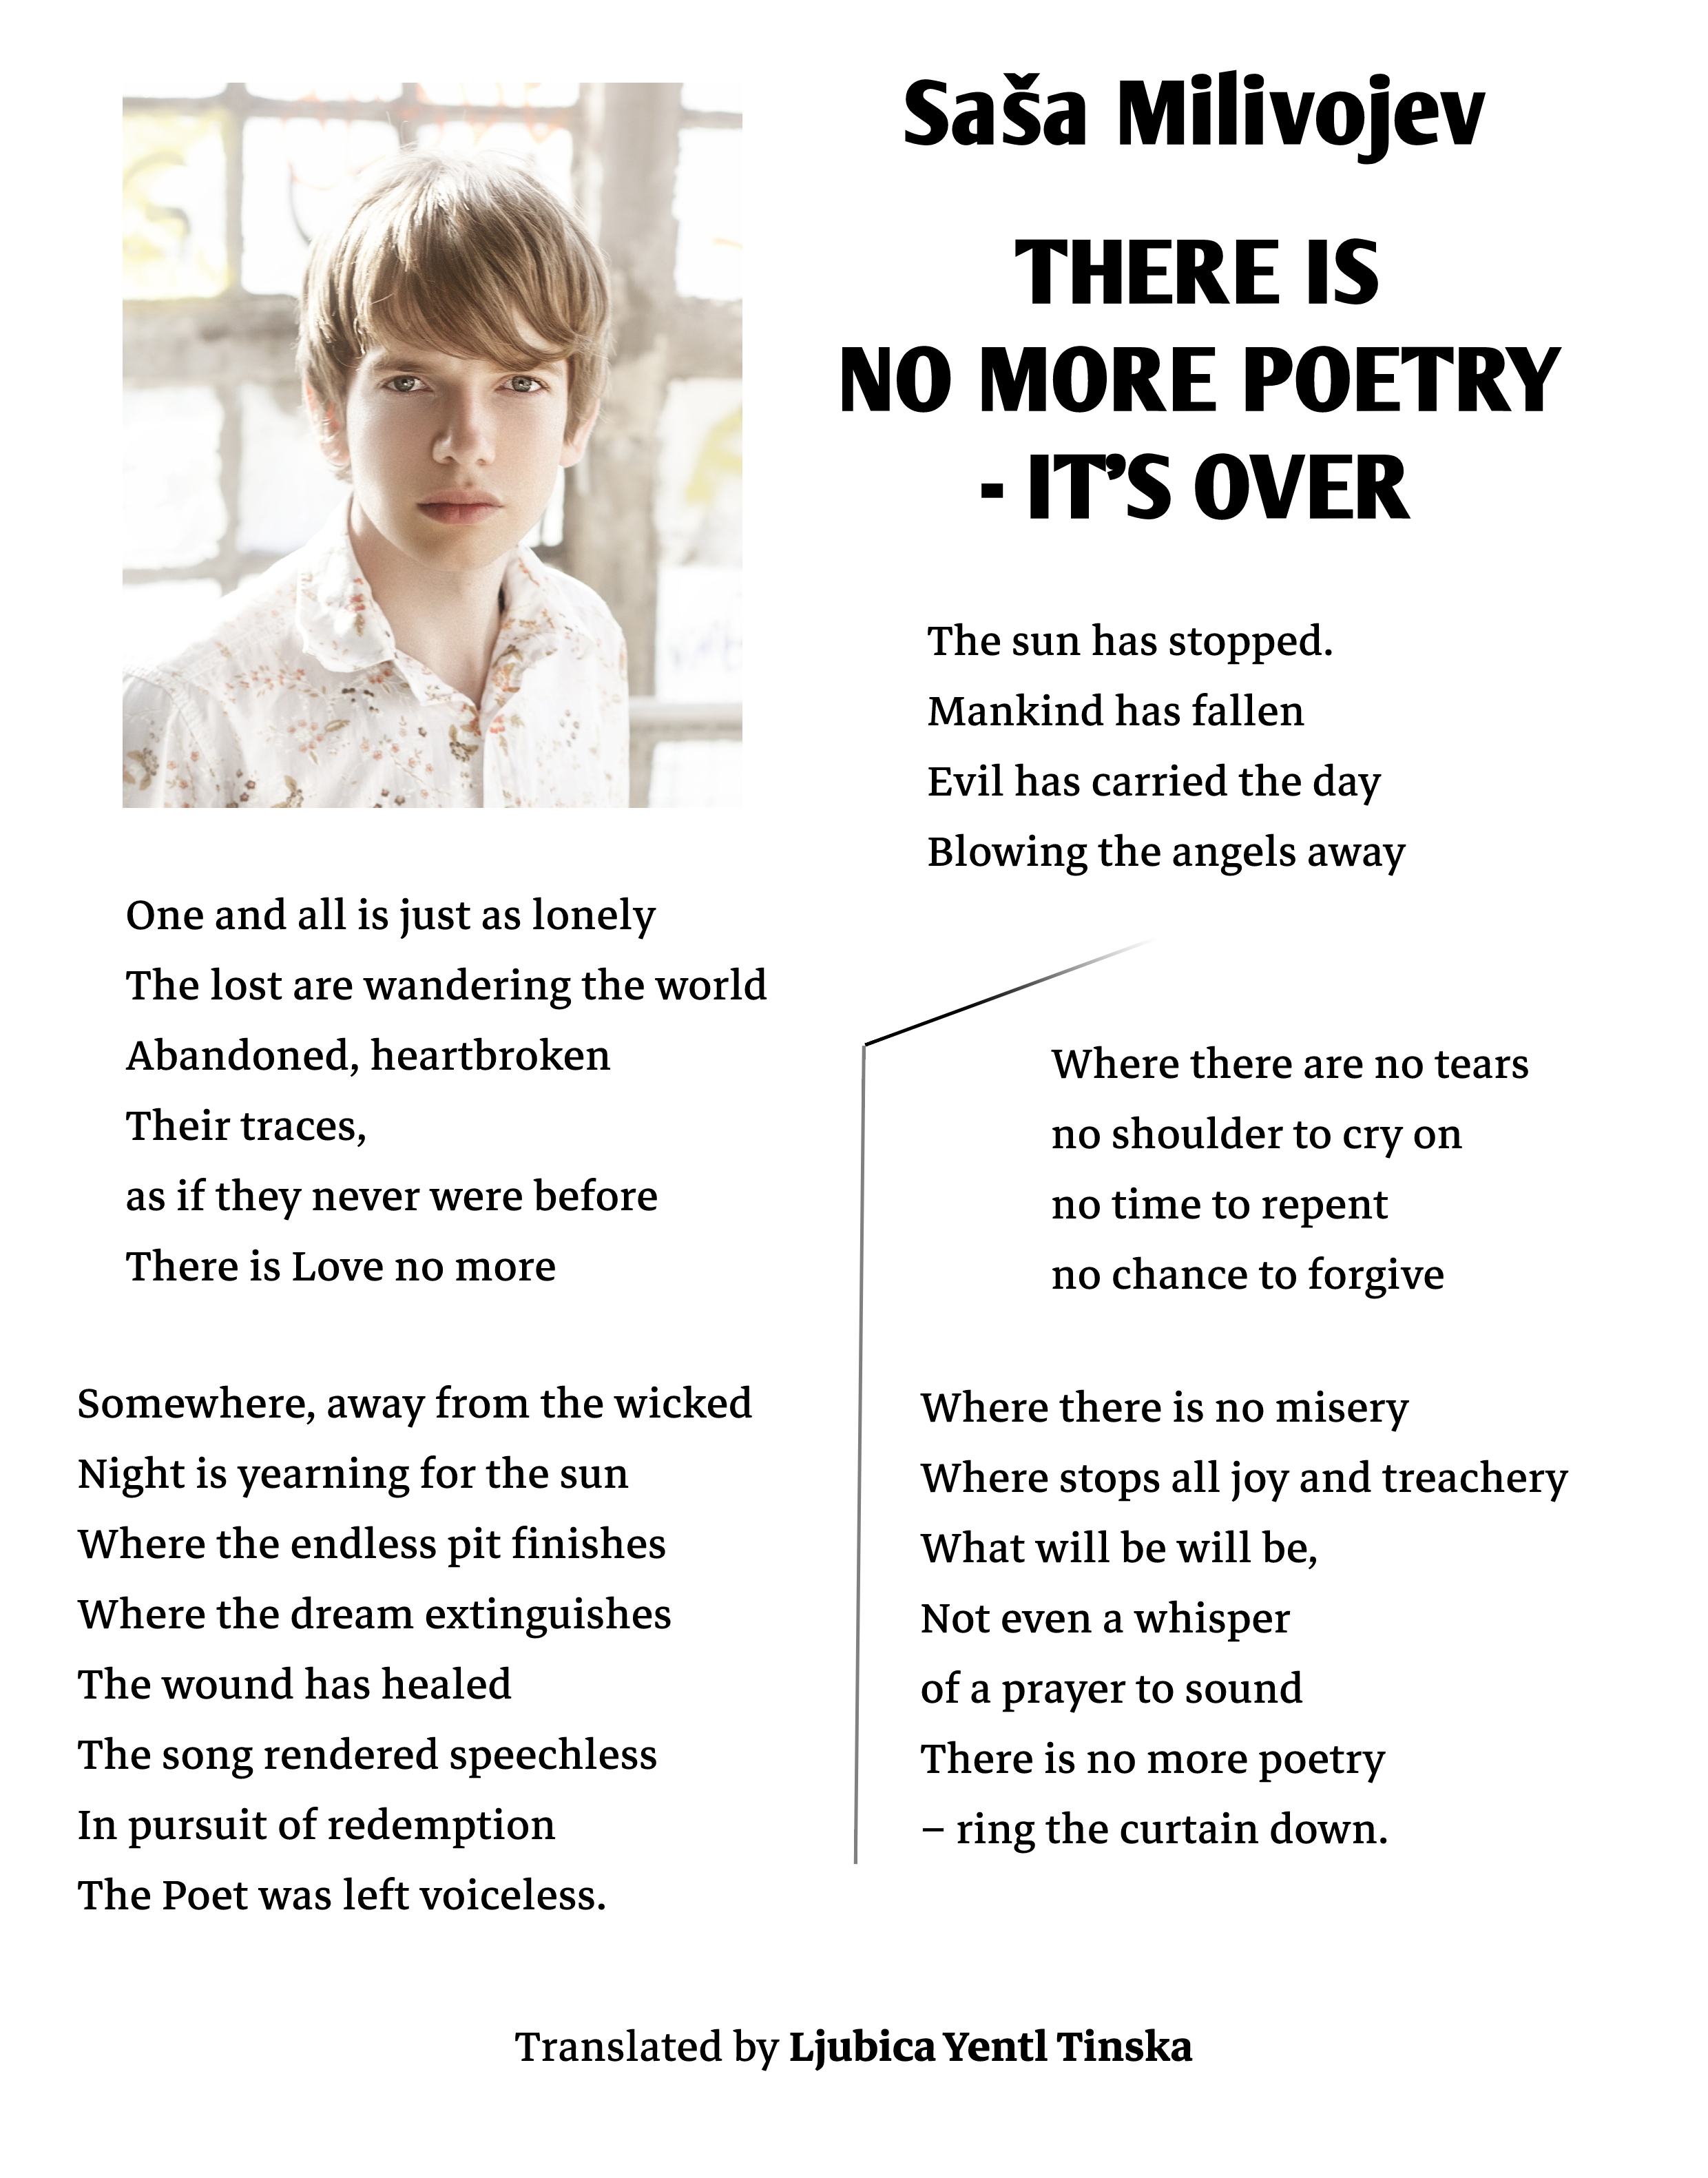 Saša Milivojev - THERE IS NO MORE POETRY. IT'S OVER